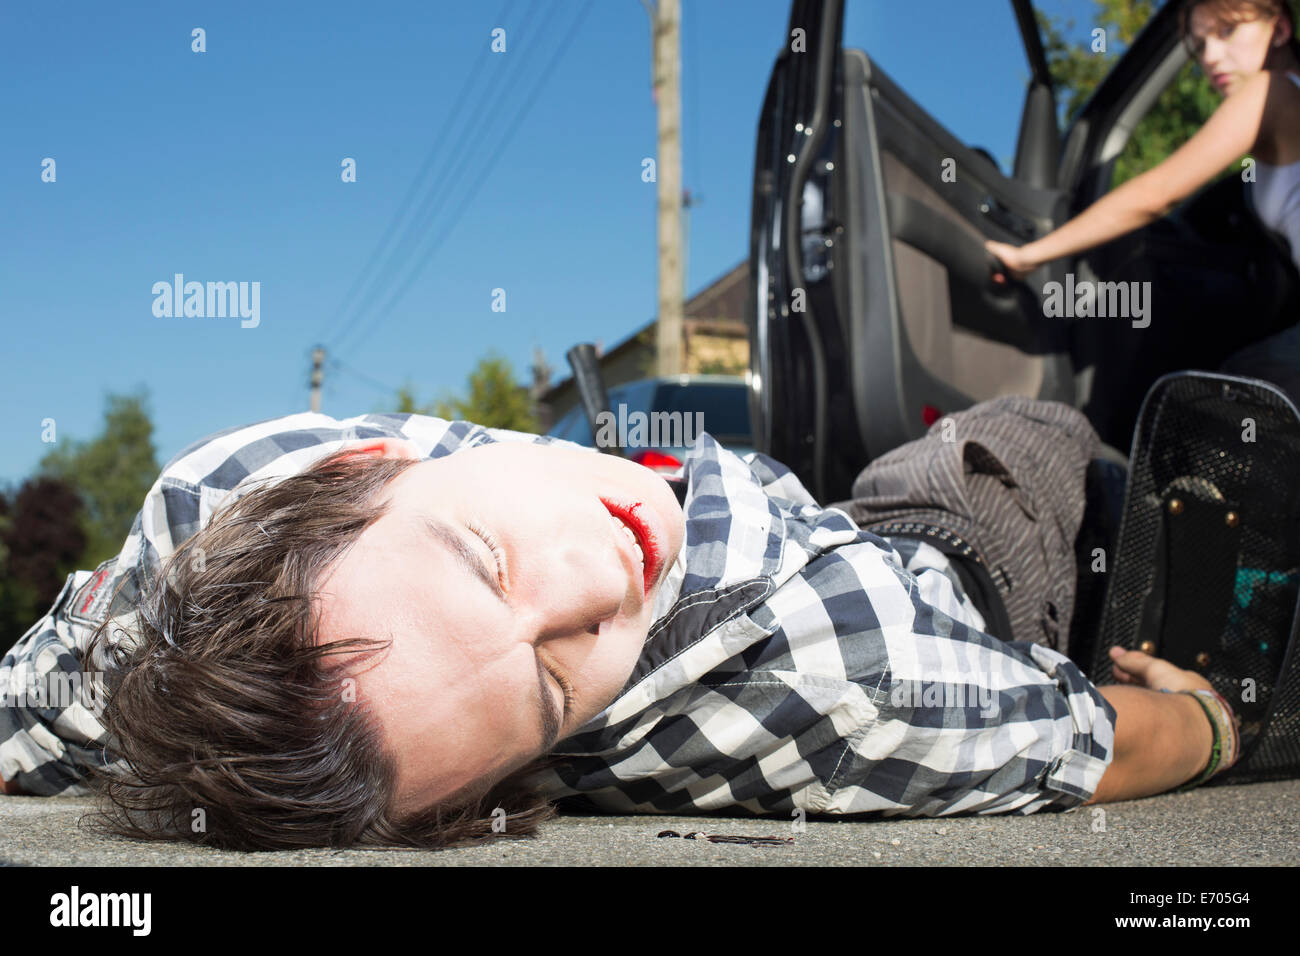 Young man hit by car lying on road - Stock Image